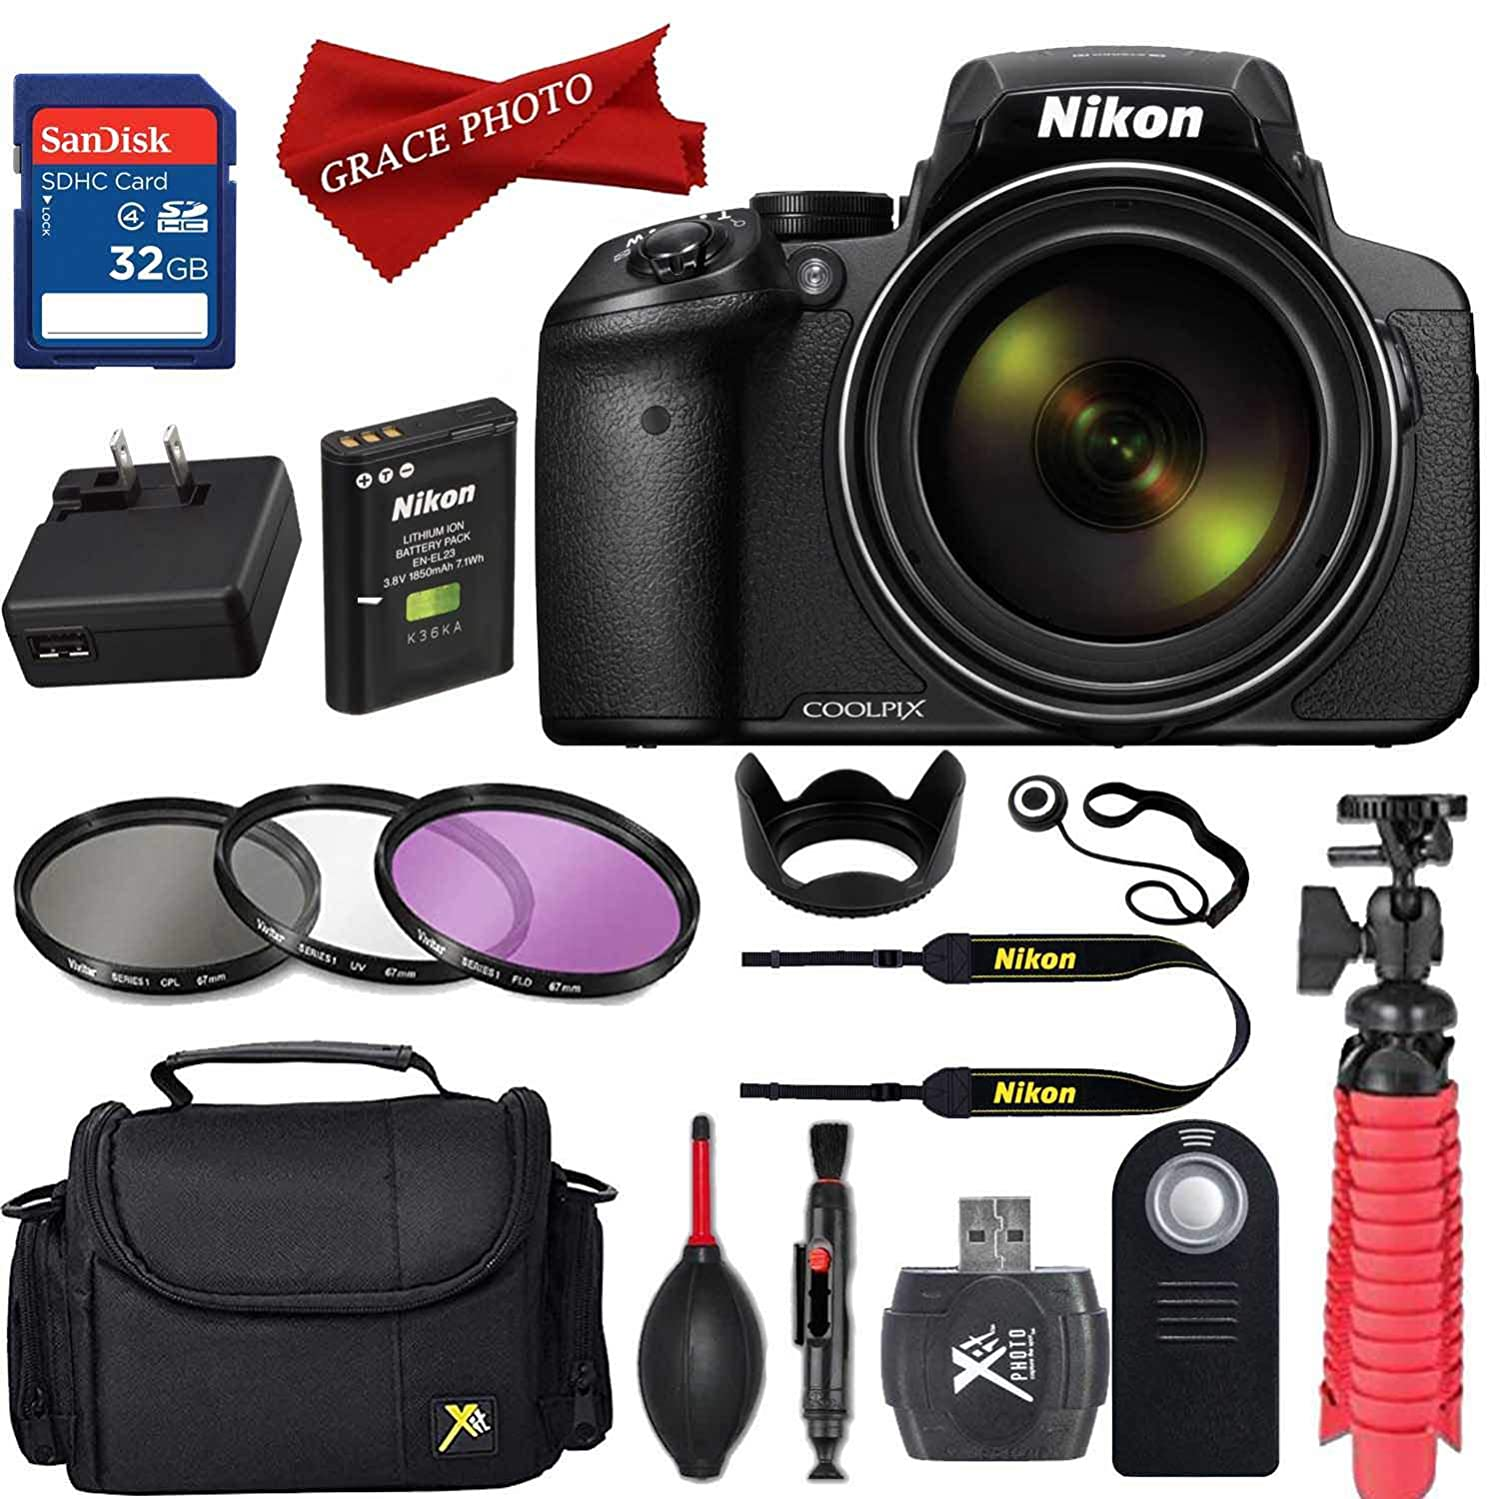 Nikon COOLPIX P900 Digital Camera with 83x Optical Zoom and Built-in Wi-Fi (Black) and Accessories